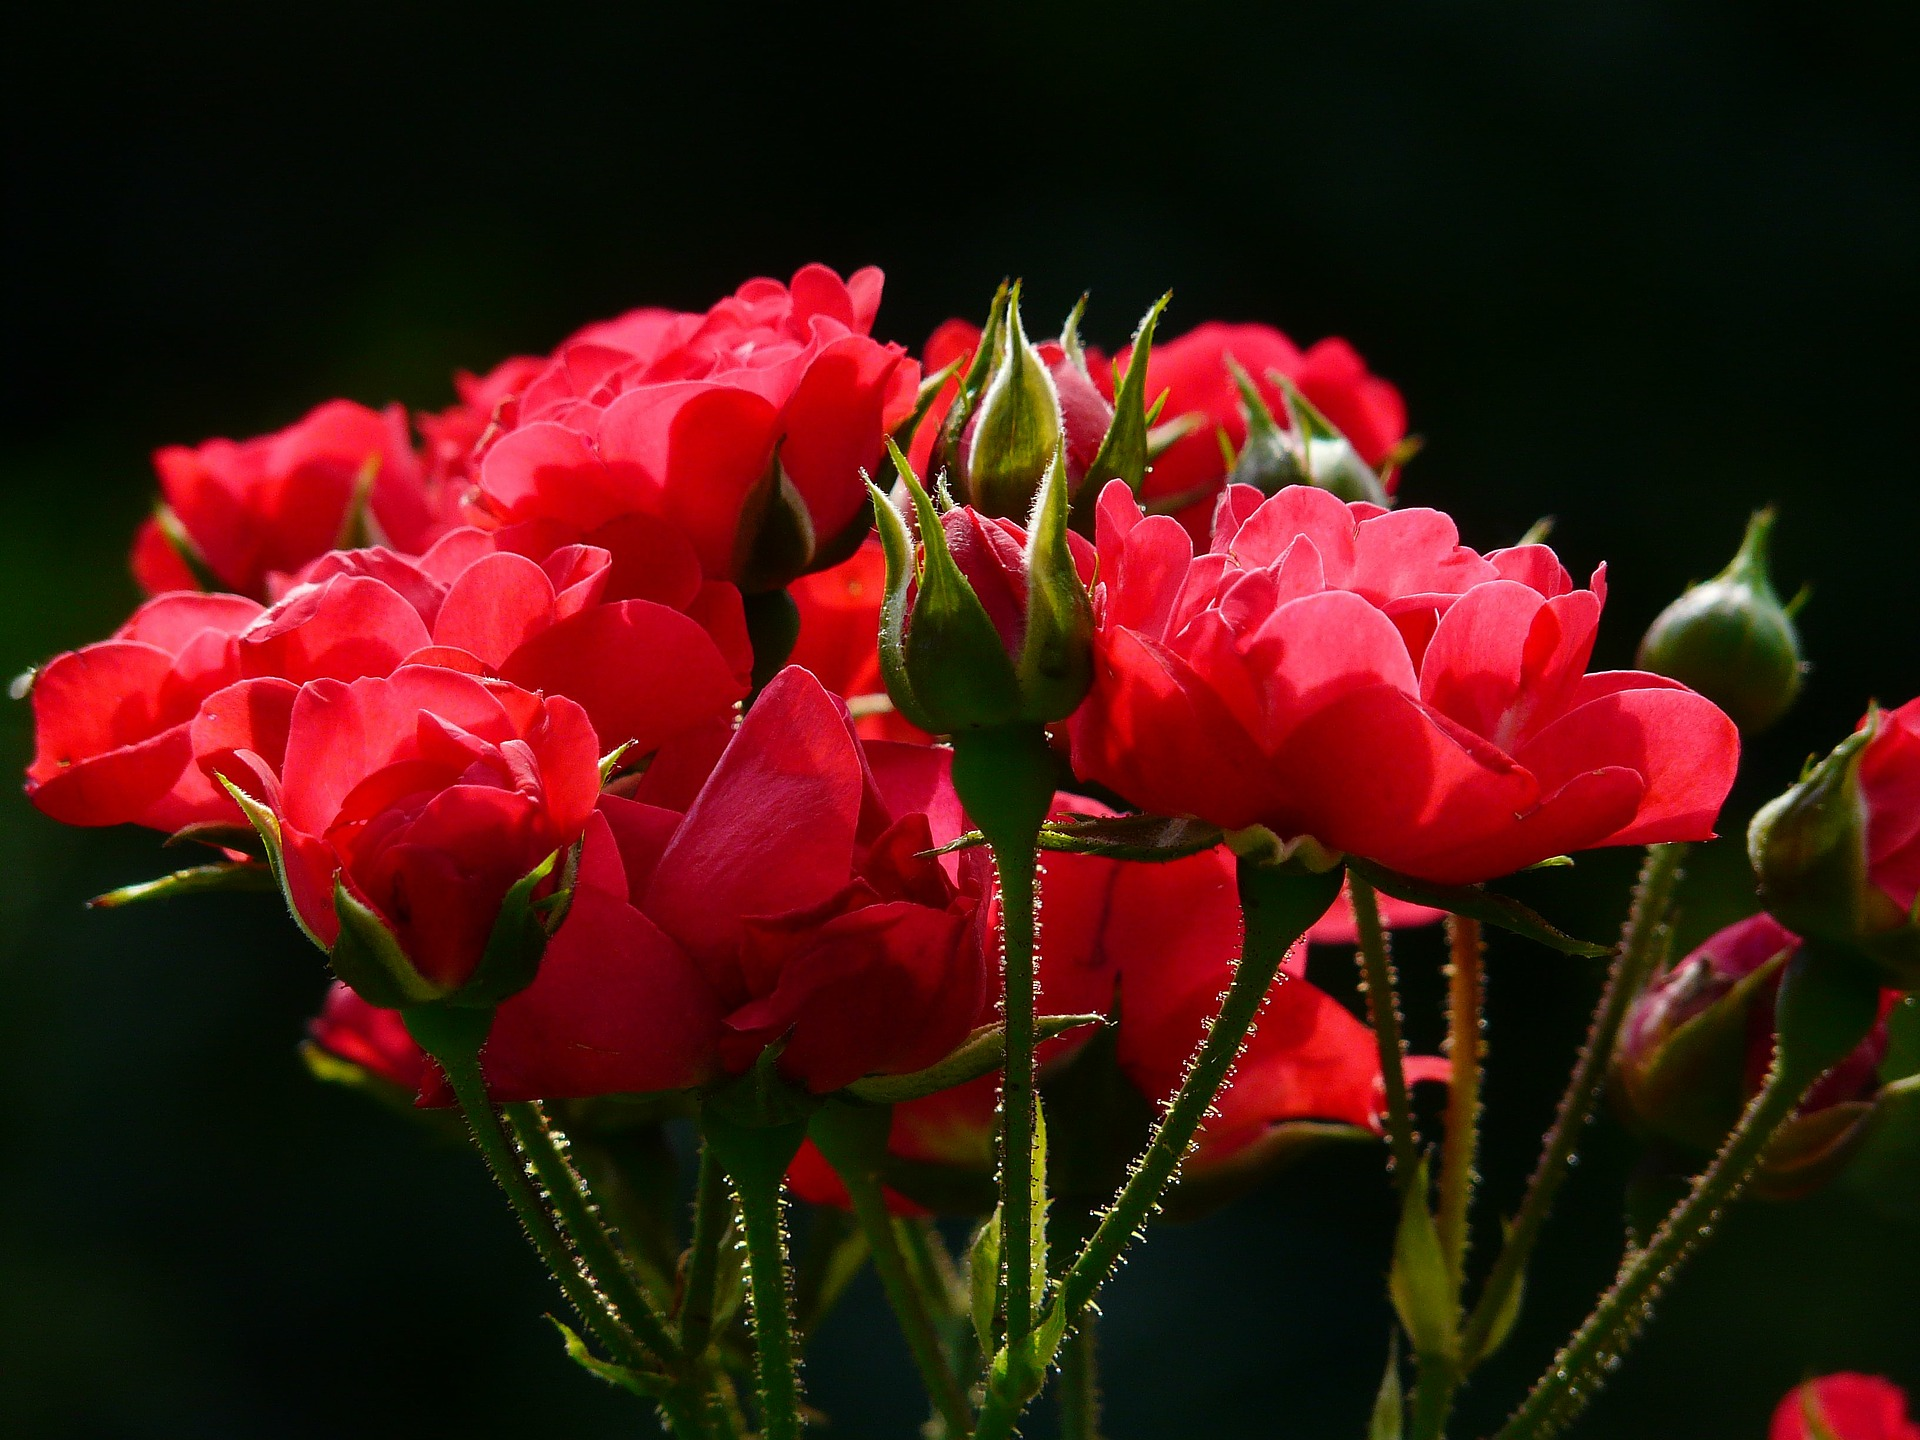 red-roses-4232_1920